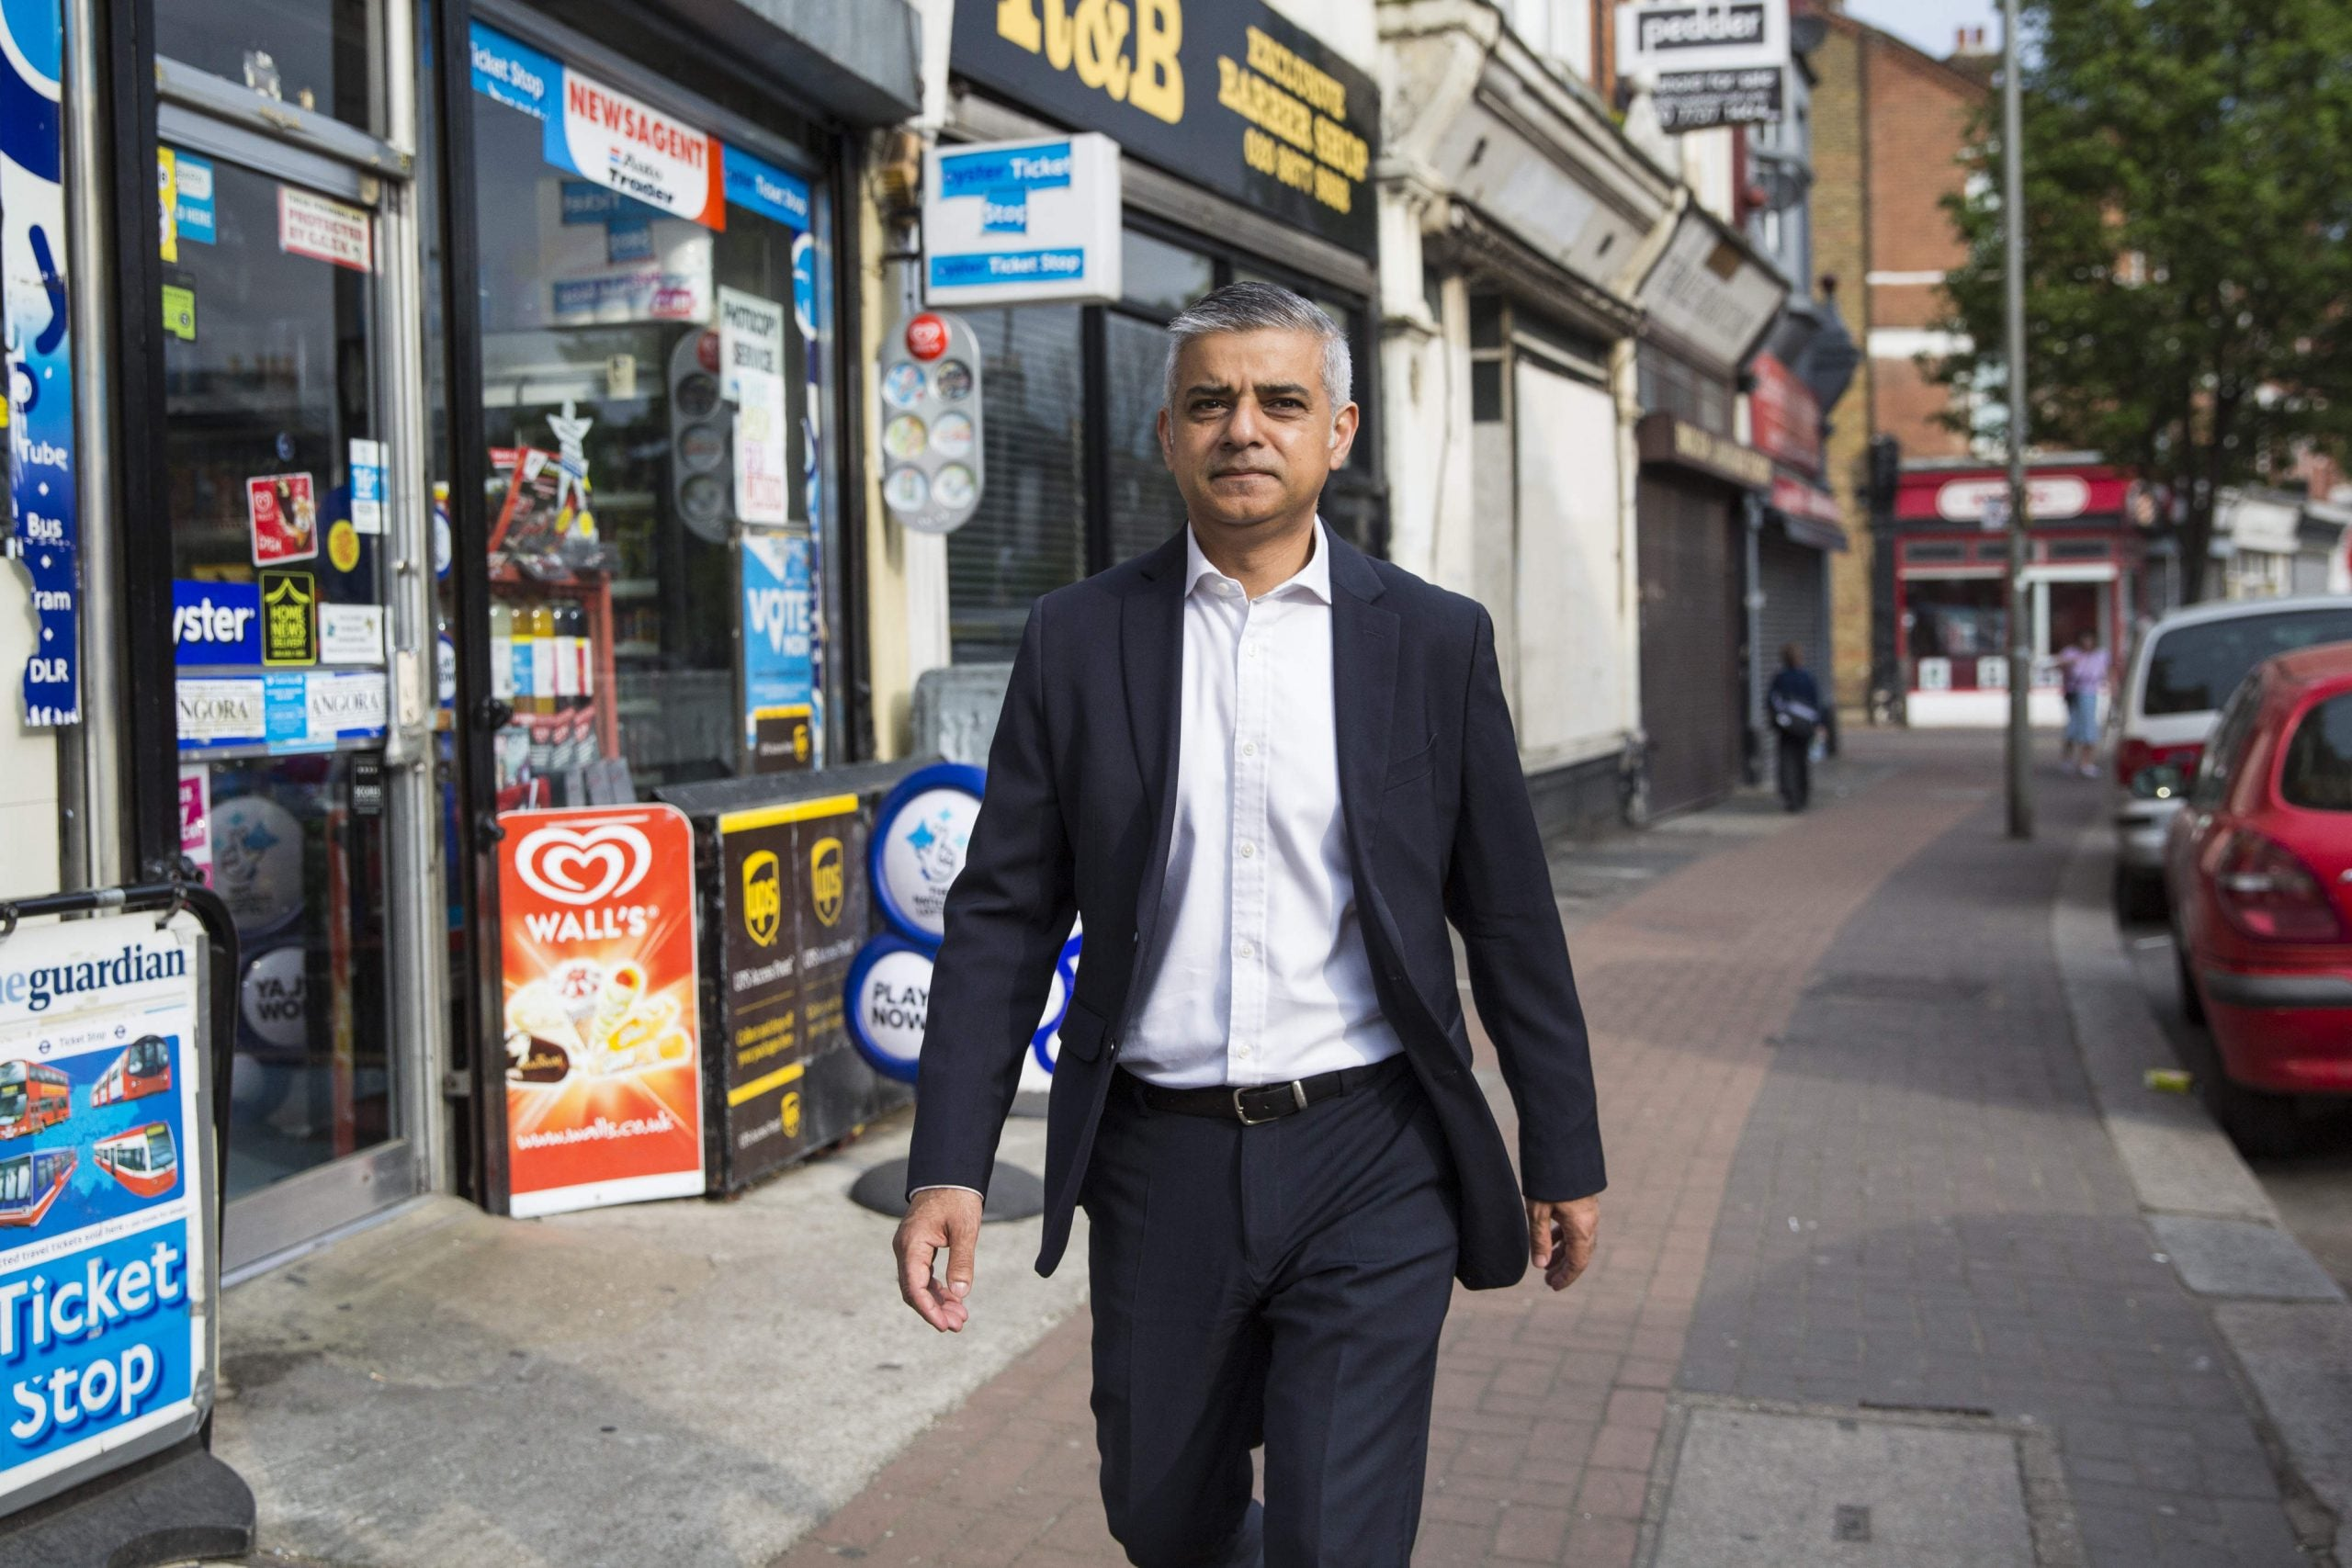 Sadiq Khan should use the mayoralty to make more Londoners citizens